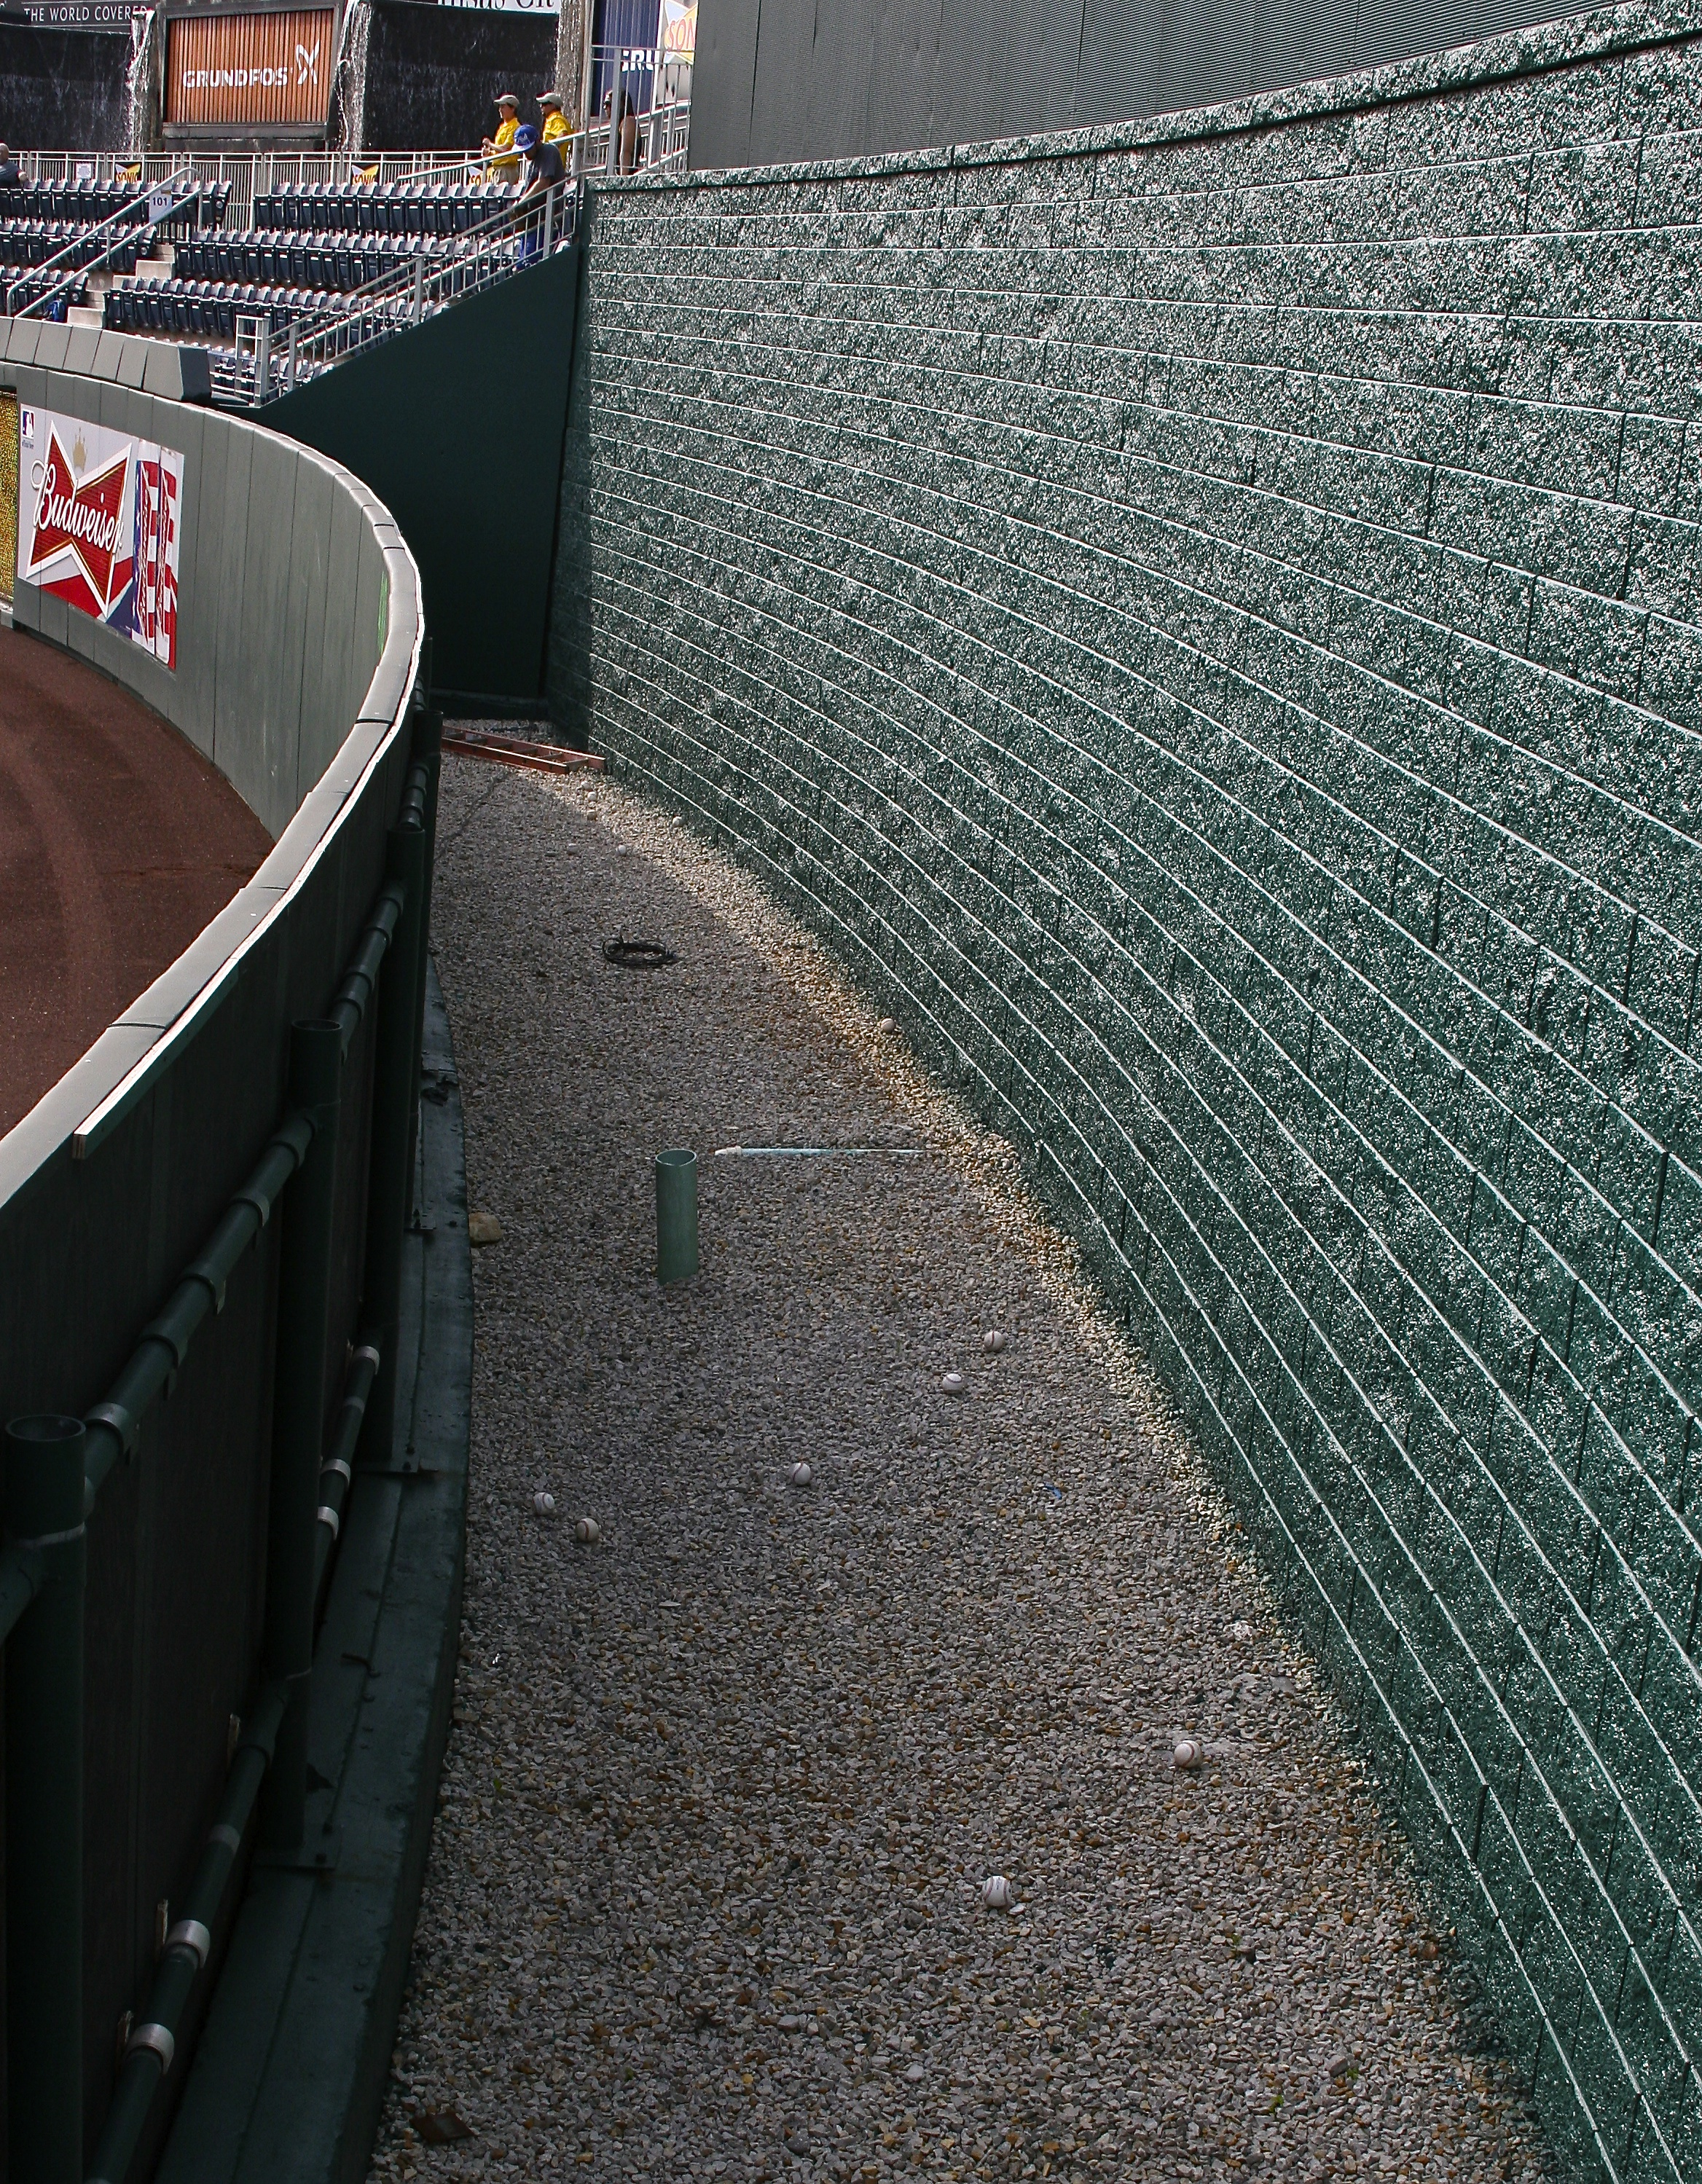 Lonely home run balls behind the center field wall